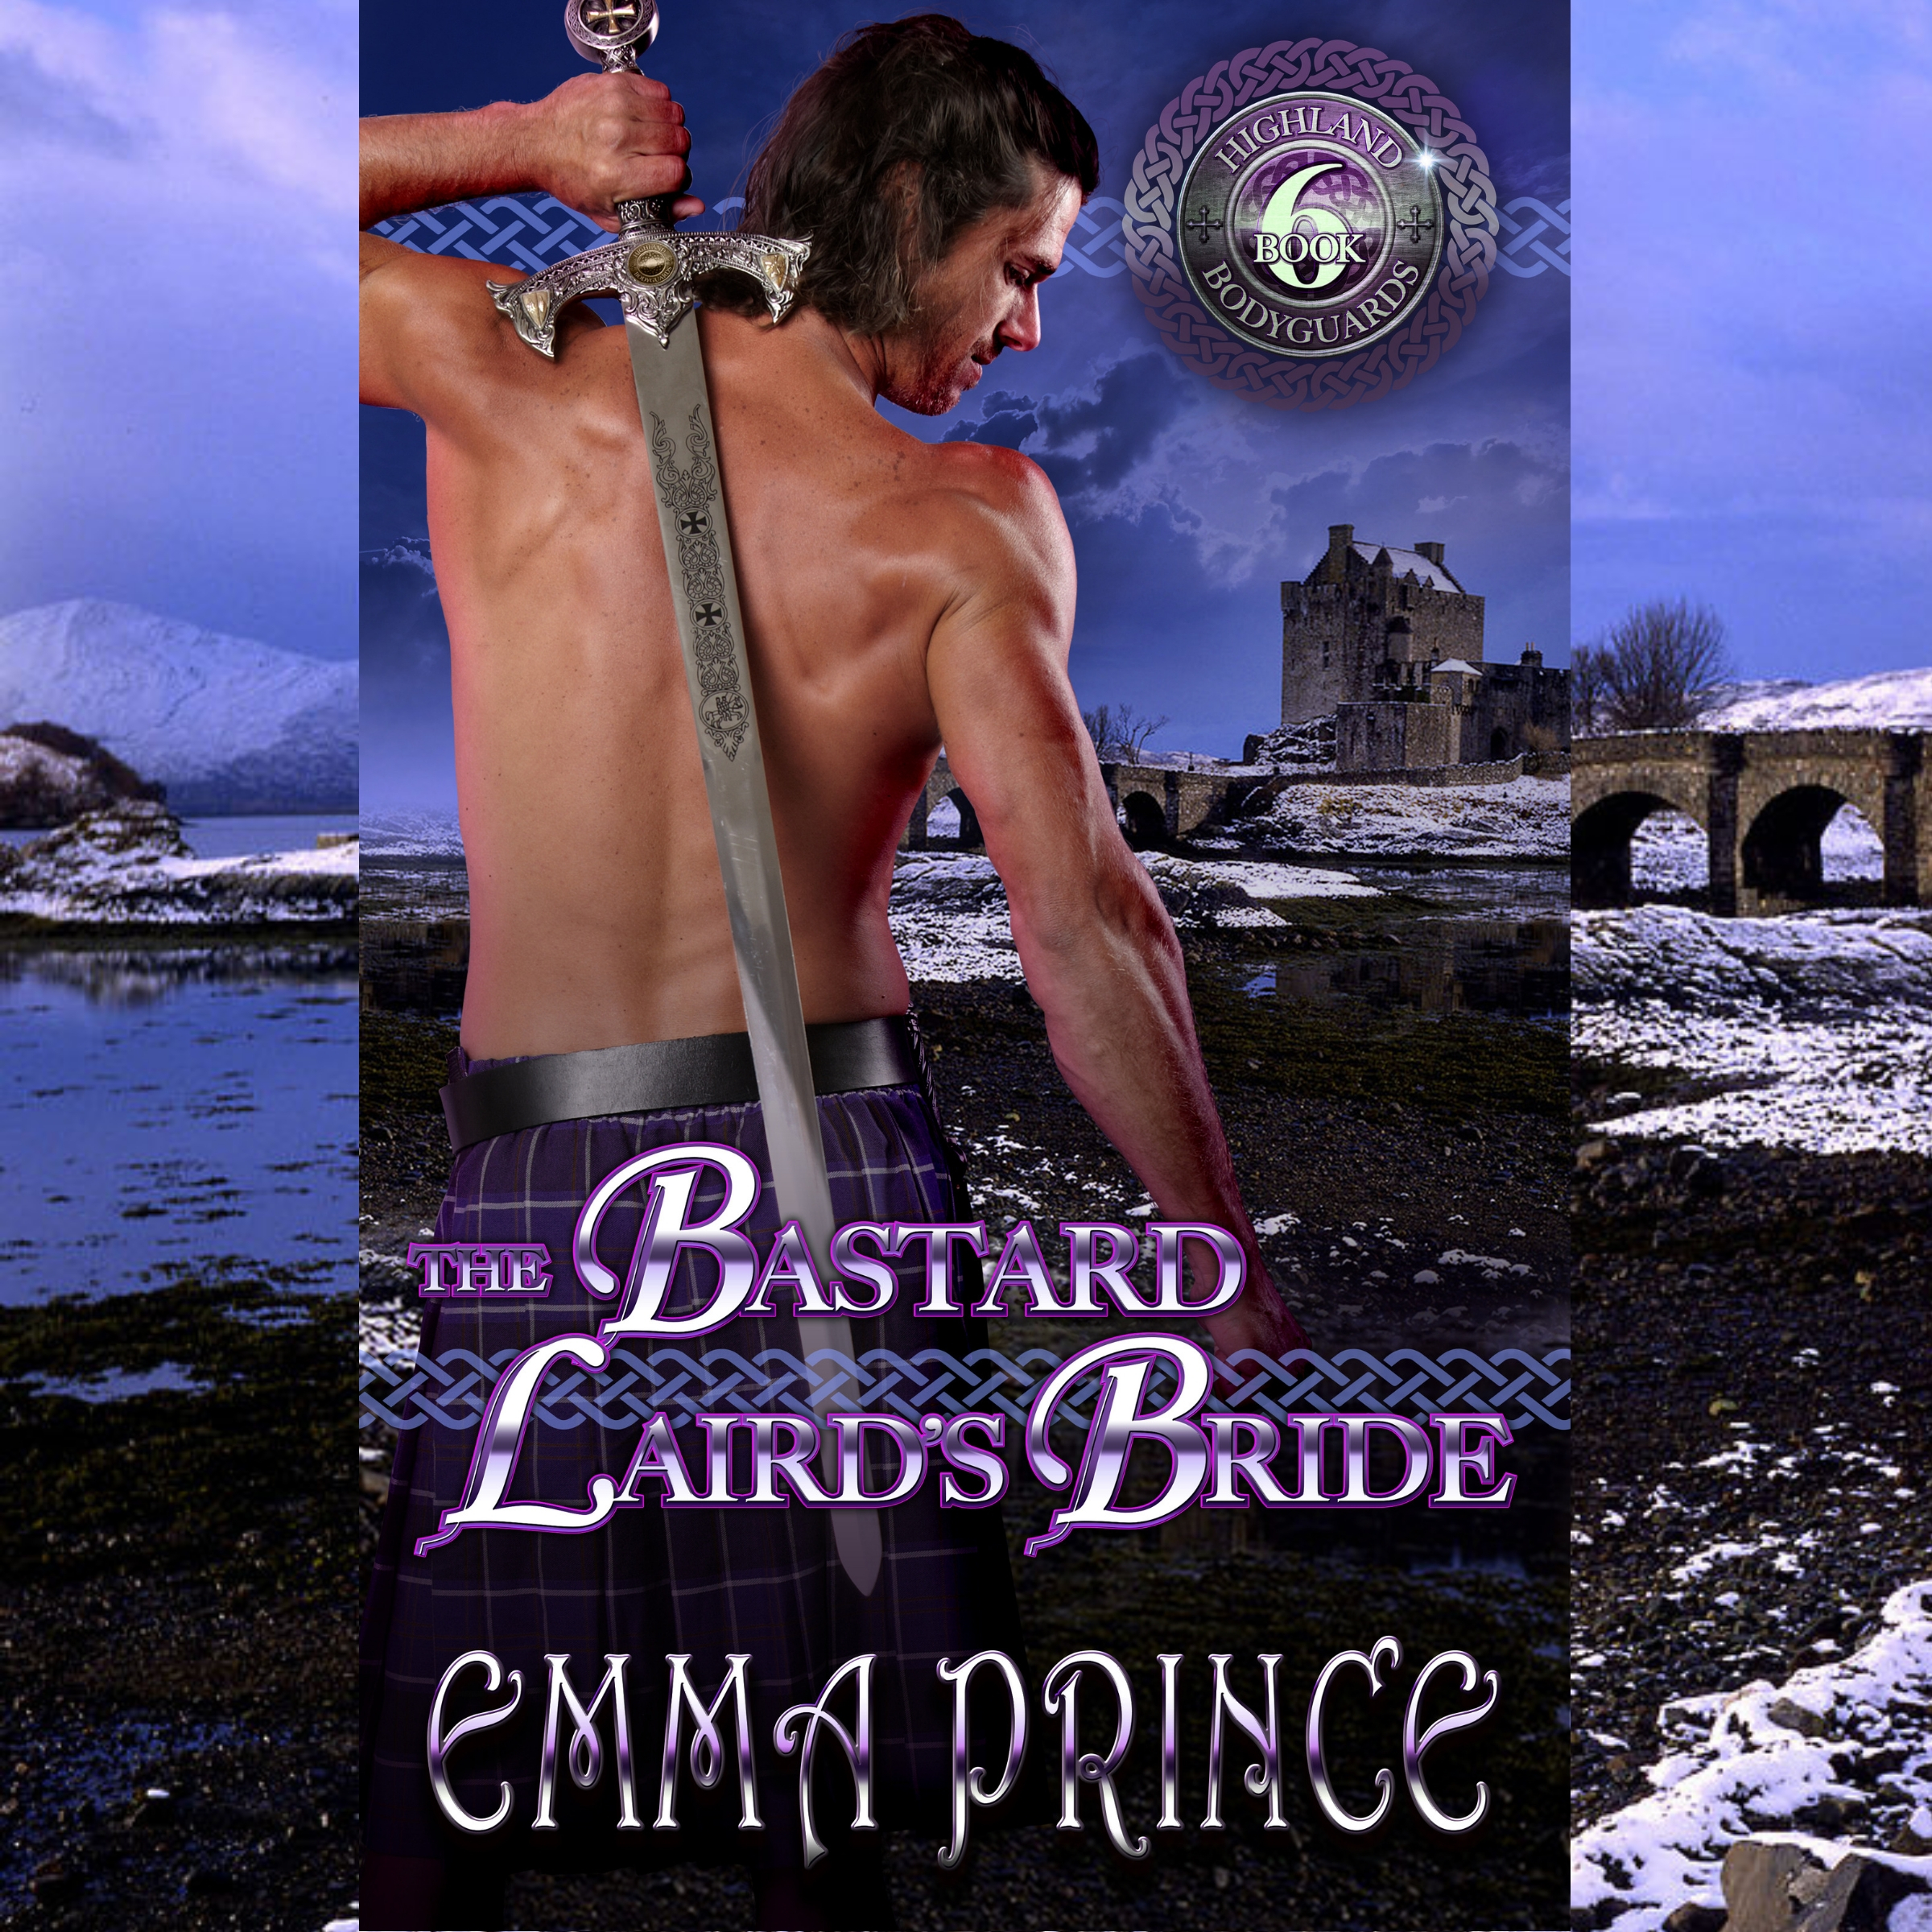 The Bastard Laird's Bride AUDIO cover.jpg